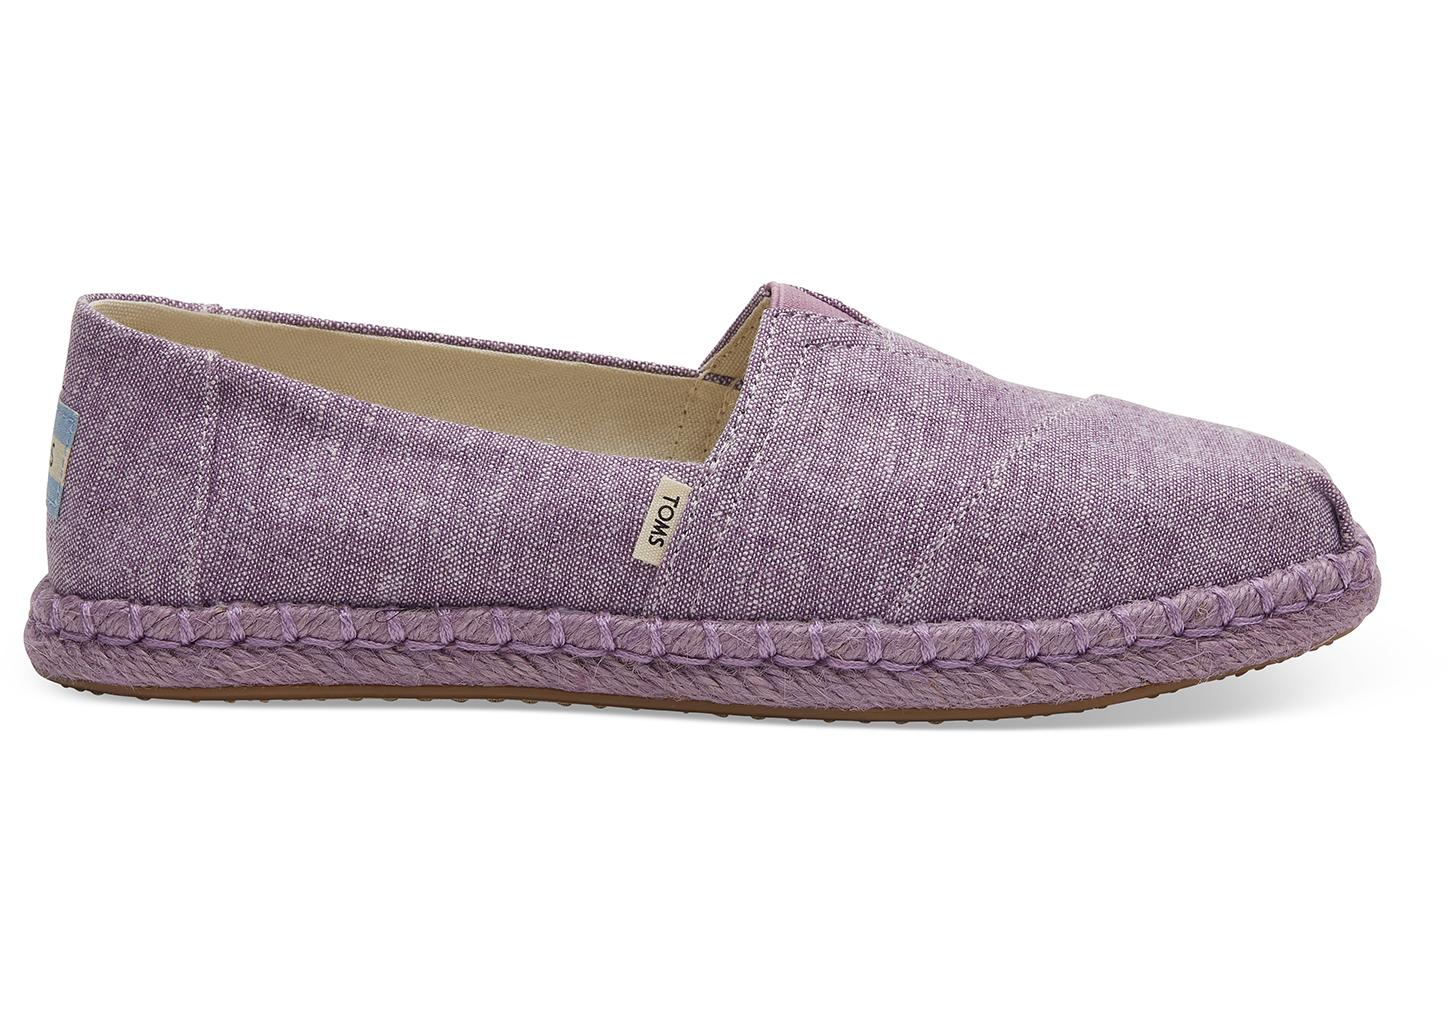 72aec97c4c4 TOMS - Purple Chambray Women s Espadrilles - Lyst. View fullscreen